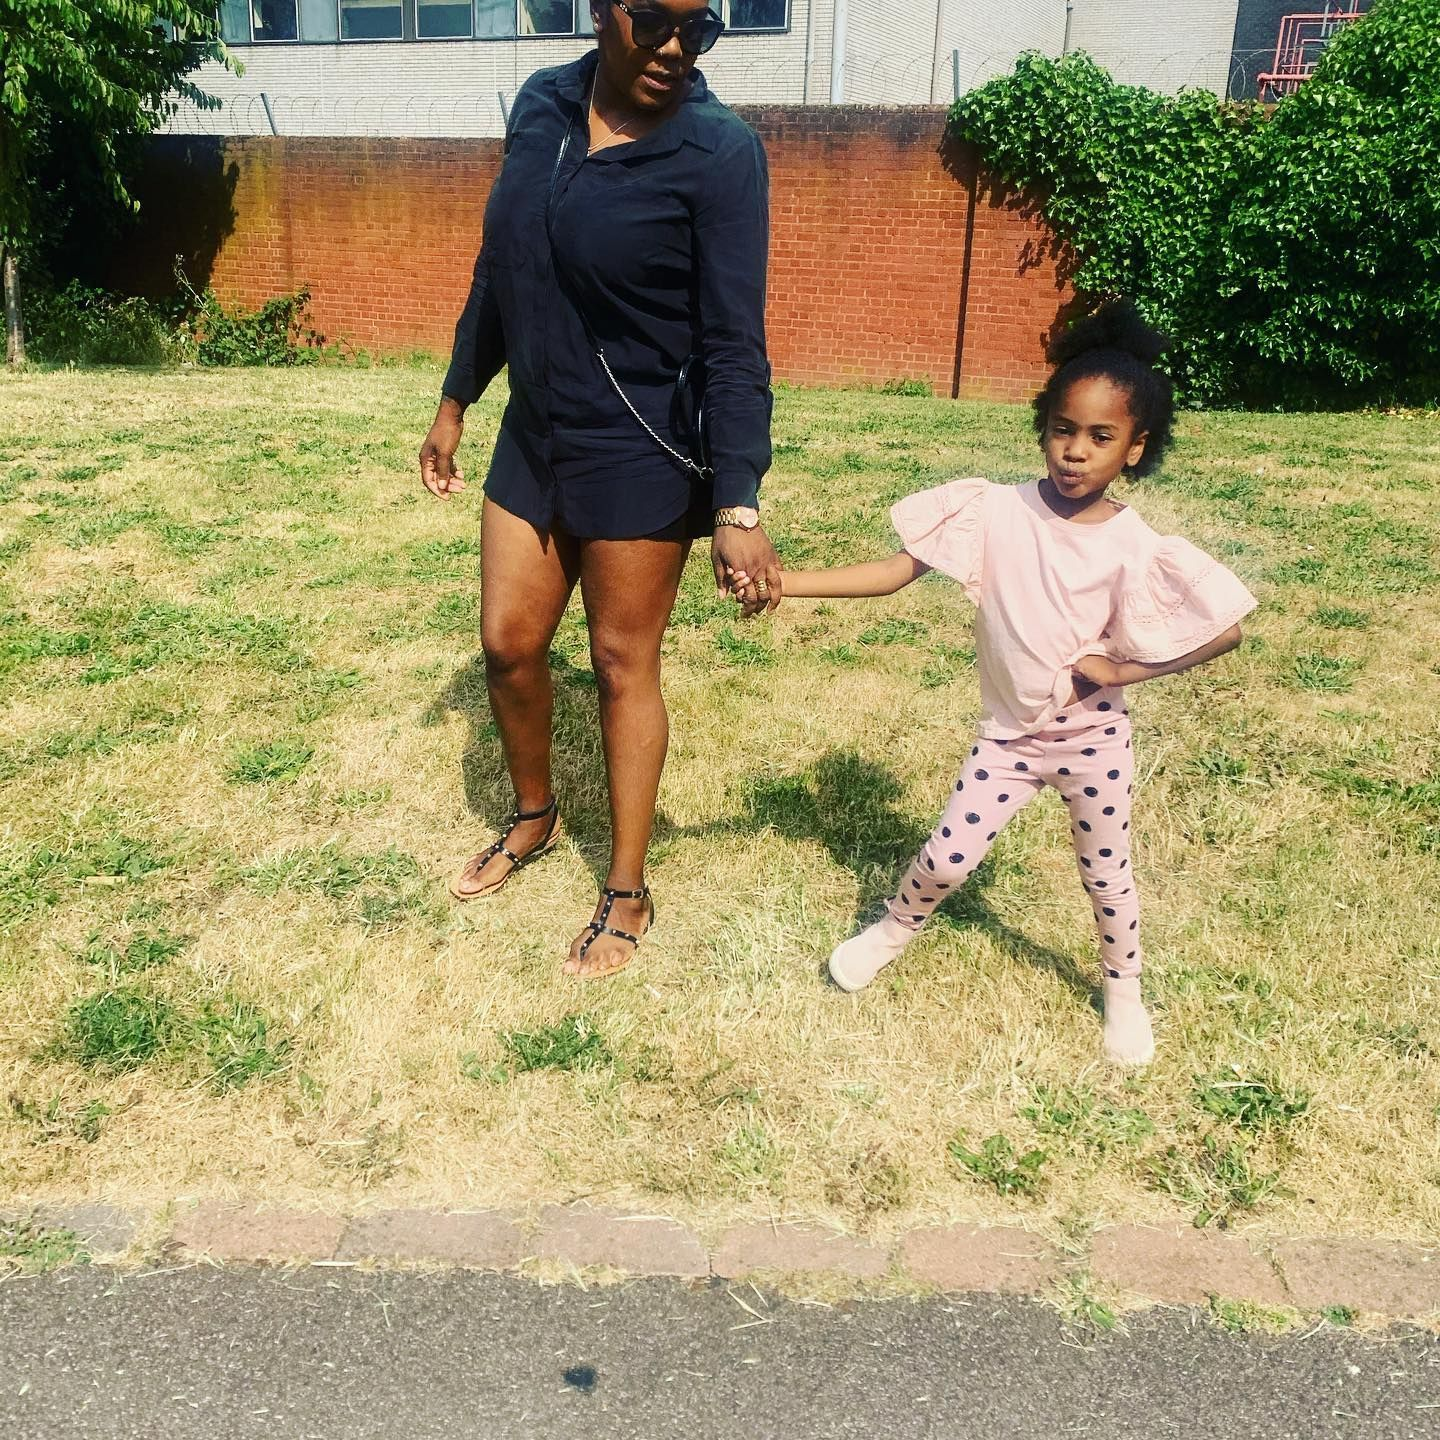 Check out these 2 posers ❤️ The reason I why I try to better myself and go through my own self love/ self worth journey to not repeat the cycle 👸🏾❤️ . . . #selflovejourney #selfloveisthebestlove #selfloveiskey #singlemumlife #londonmum#bestlifeever#selfloveclub #positivevibesalways #positivityiskey #tryingmybest#mummydaughter #mummydaughtertime #ukmum #ukmums #ukmummy #selflovematters#dailyinspirations #inspiredmotherhood#londonmummy#inspiringmum